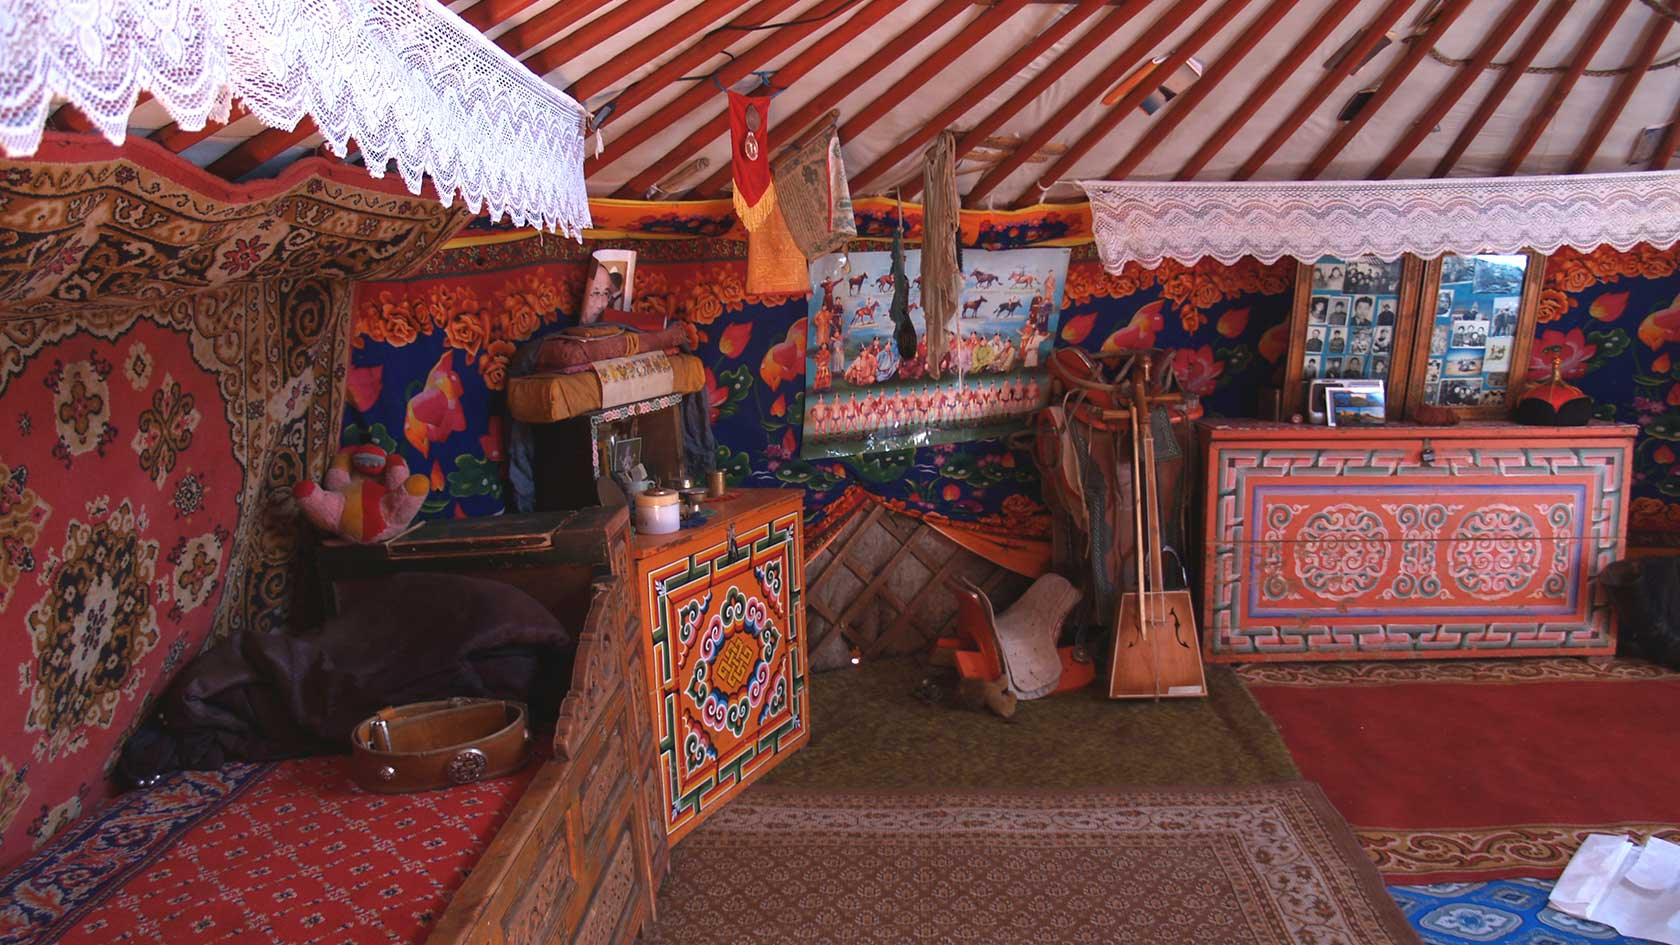 A NOMAD'S GER IN MONGOLIA